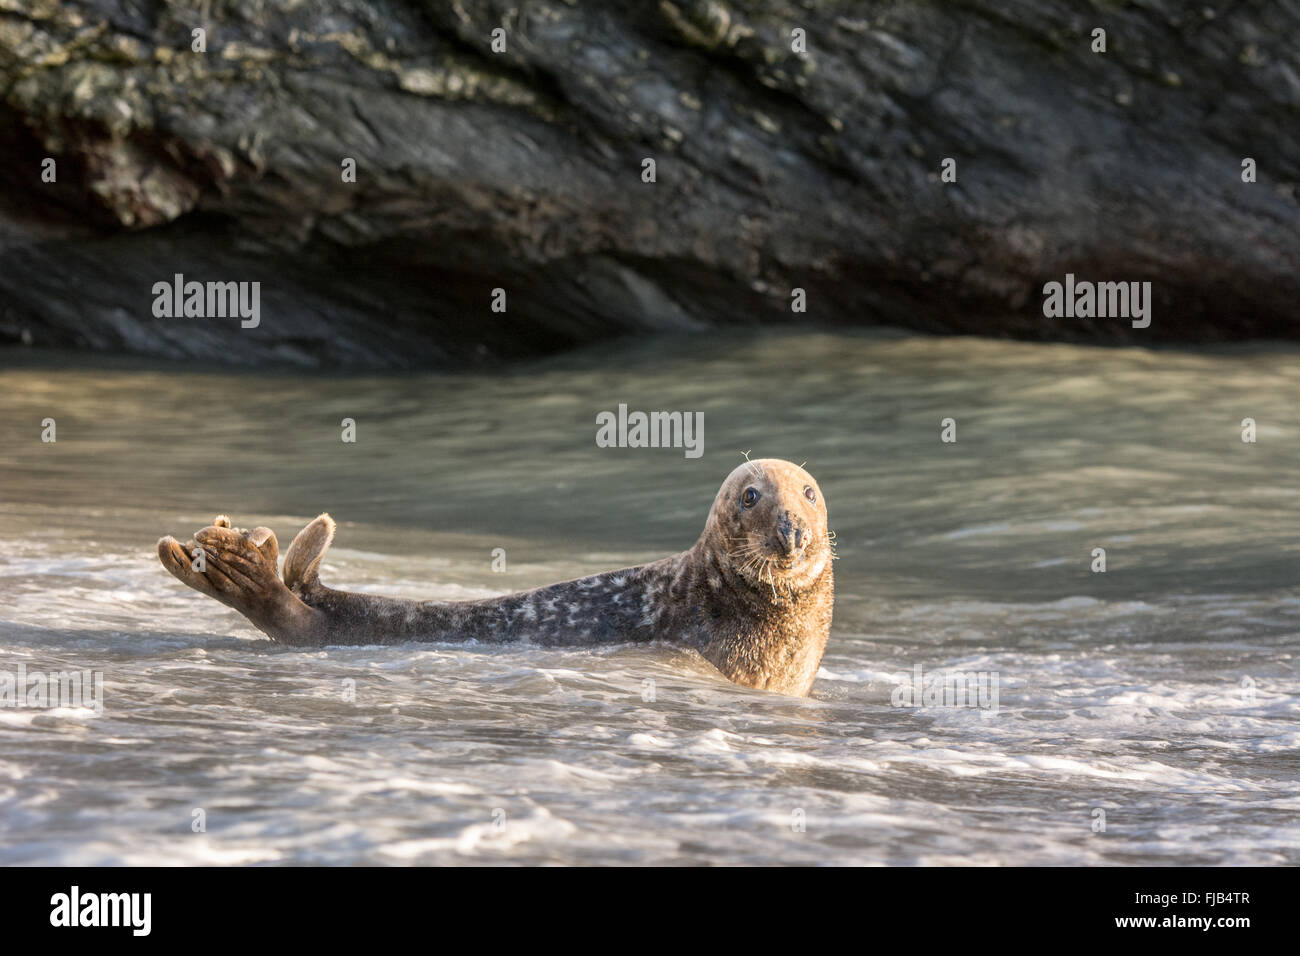 Grey seal (Halichoerus grypus) in shallow sea water against a rocky backdrop Stock Photo